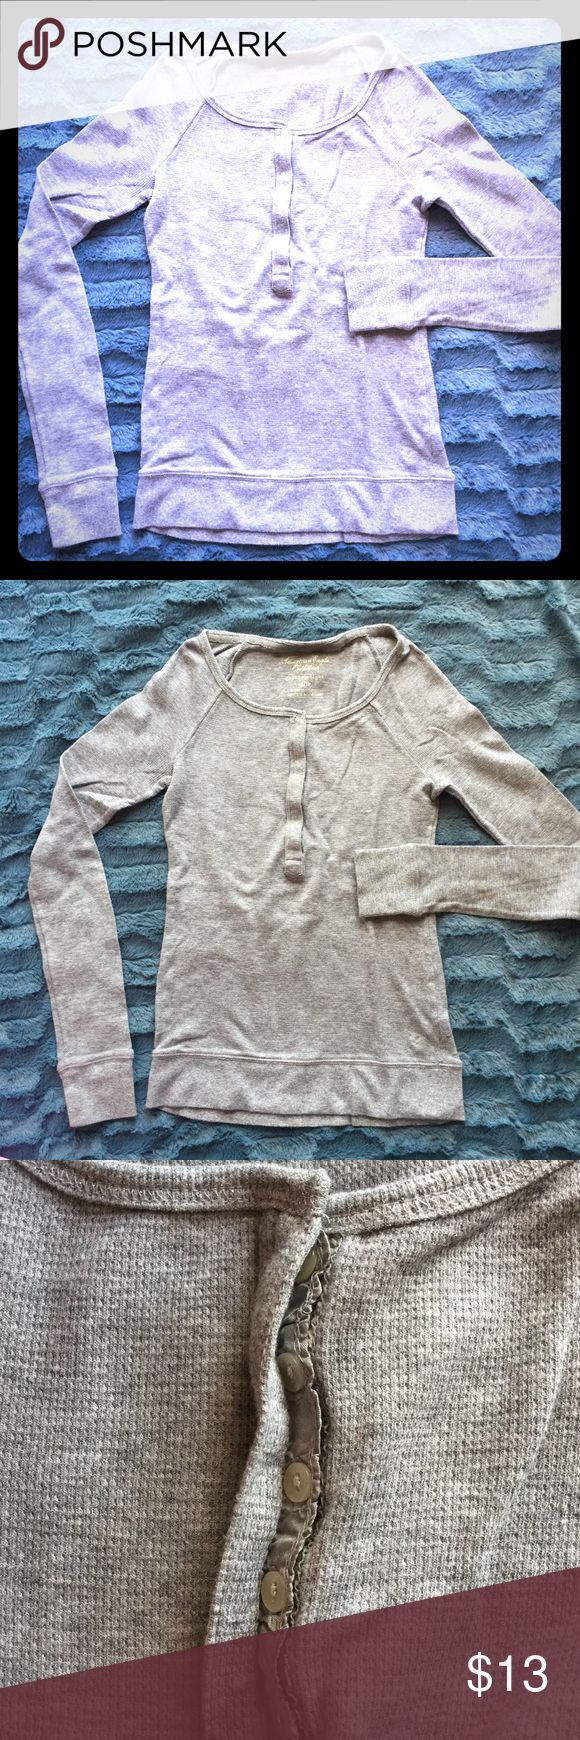 Grey long sleeve top, size XS Grey long sleeve top, hidden buttons in the front, metallic thread on the cuffs and waste line, gently used. Size XS American Eagle Outfitters Tops Tees - Long Sleeve